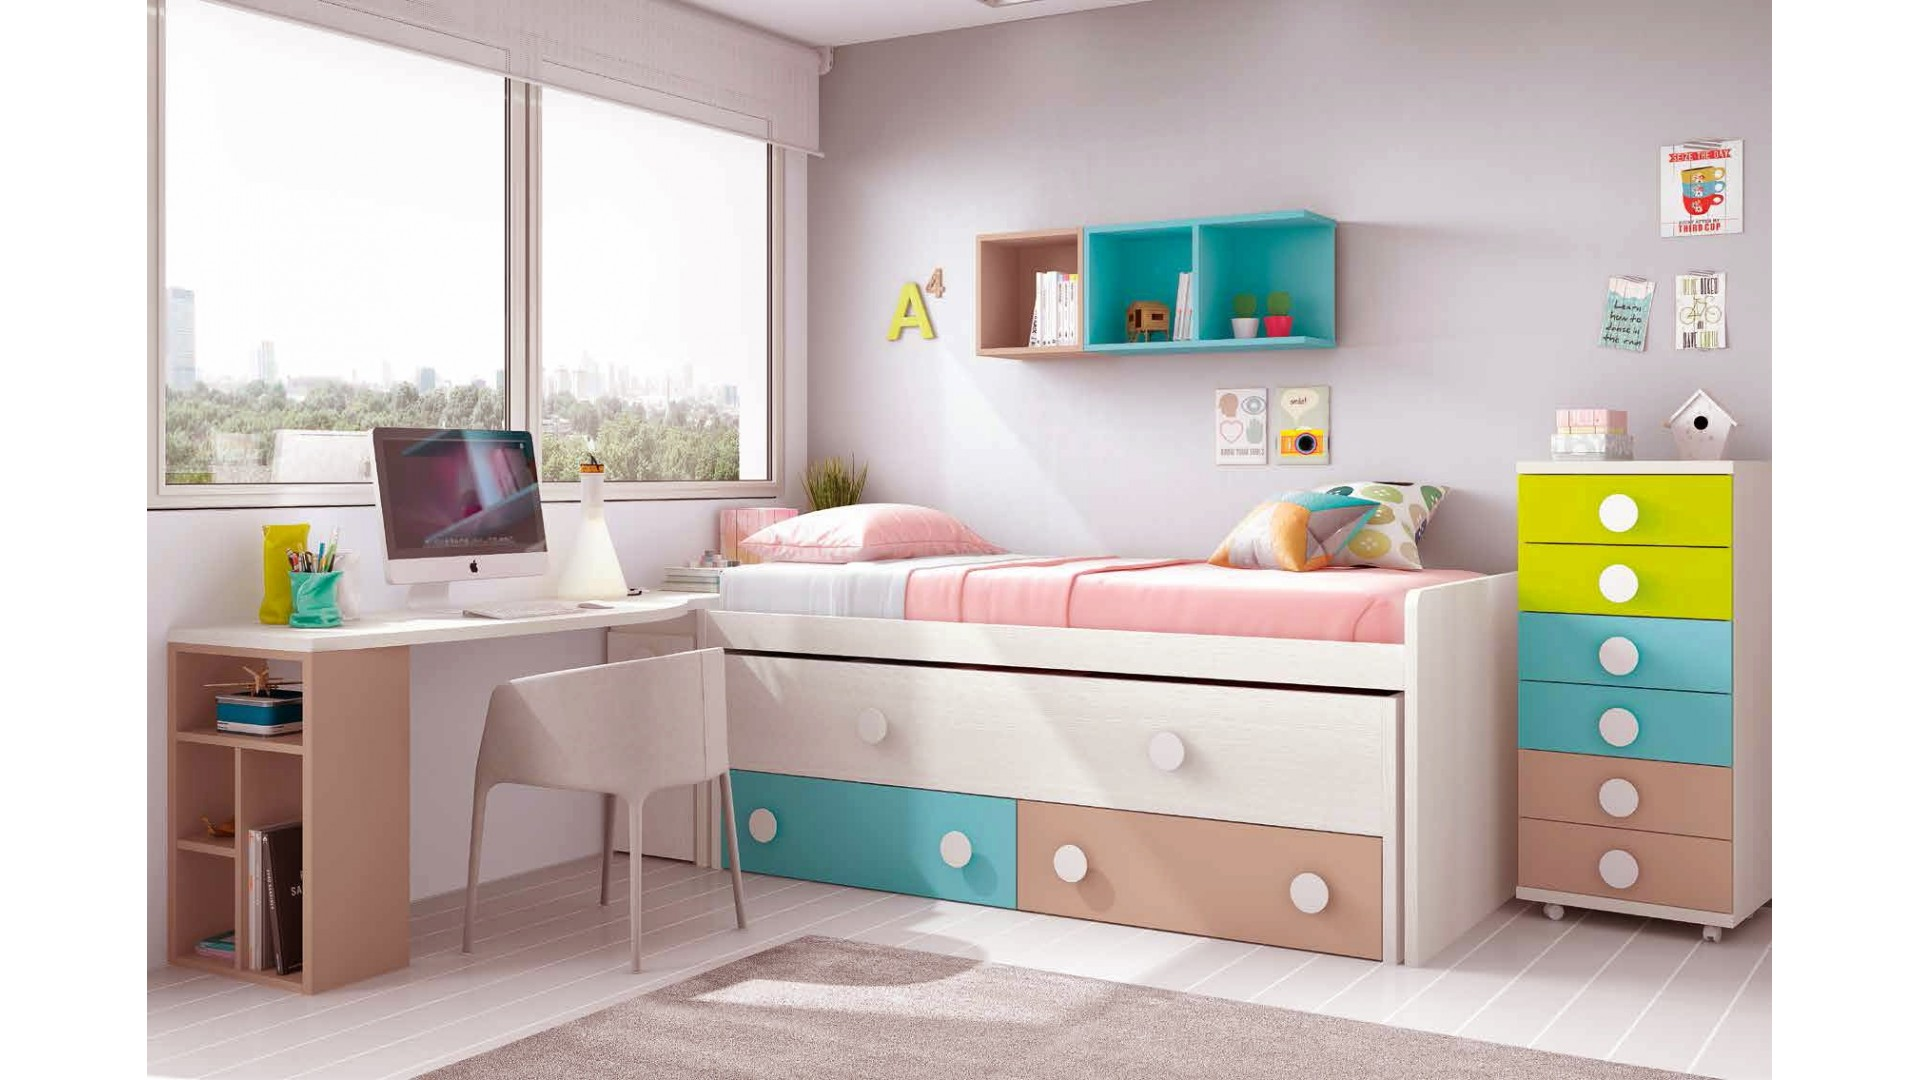 chambre ado design avec lit sur lev color et fun. Black Bedroom Furniture Sets. Home Design Ideas